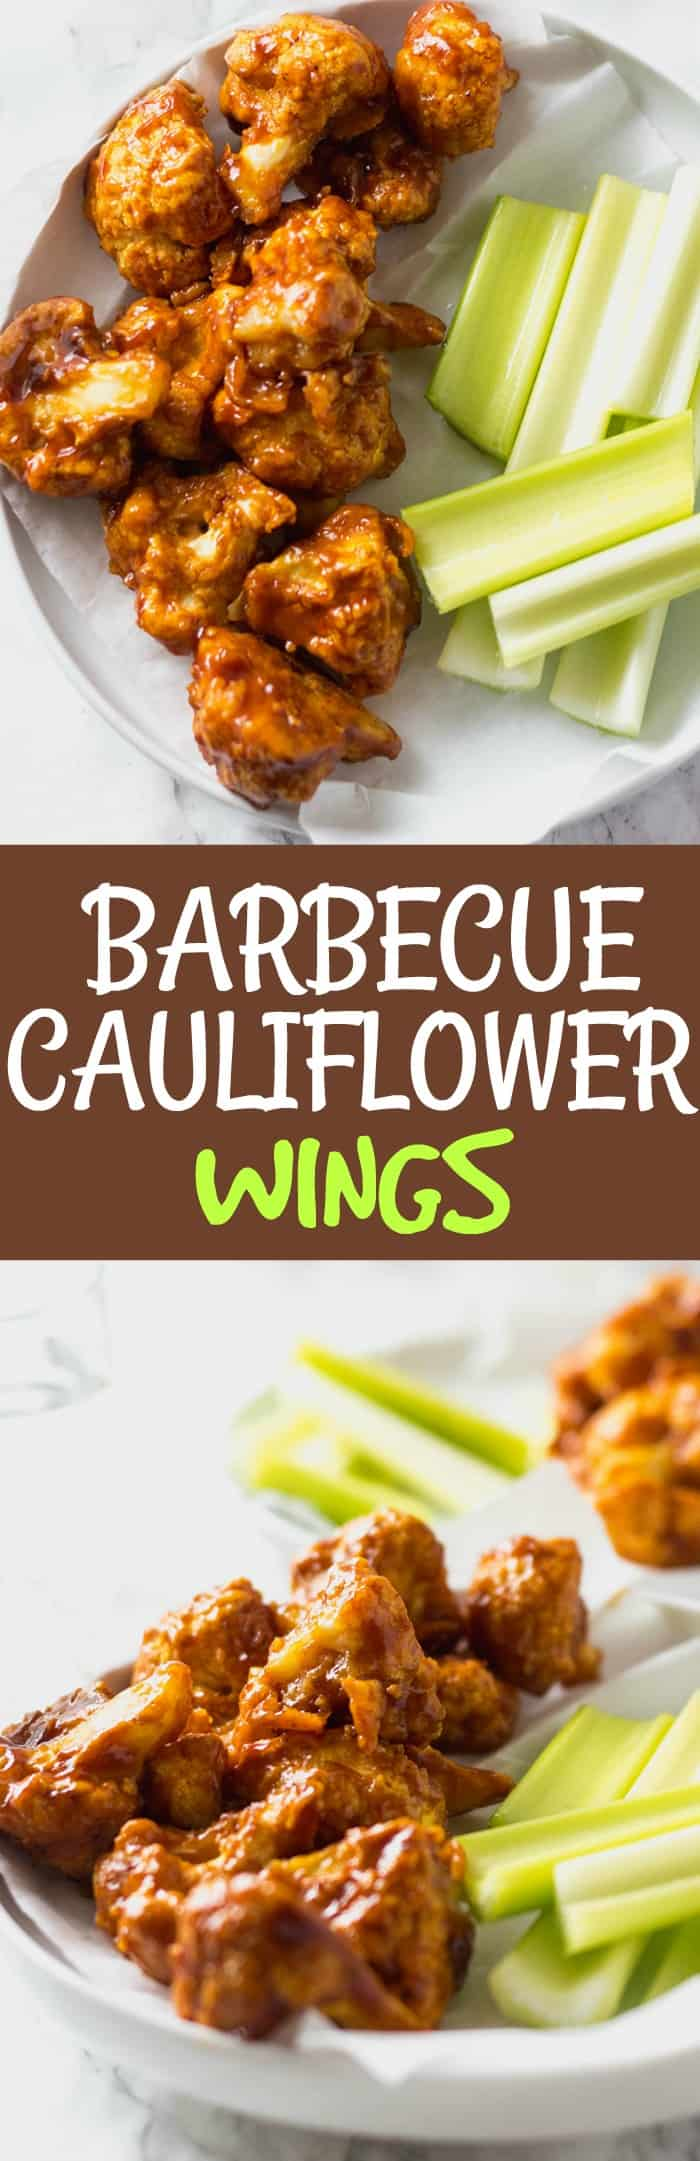 Barbecue Cauliflower Wings Pin